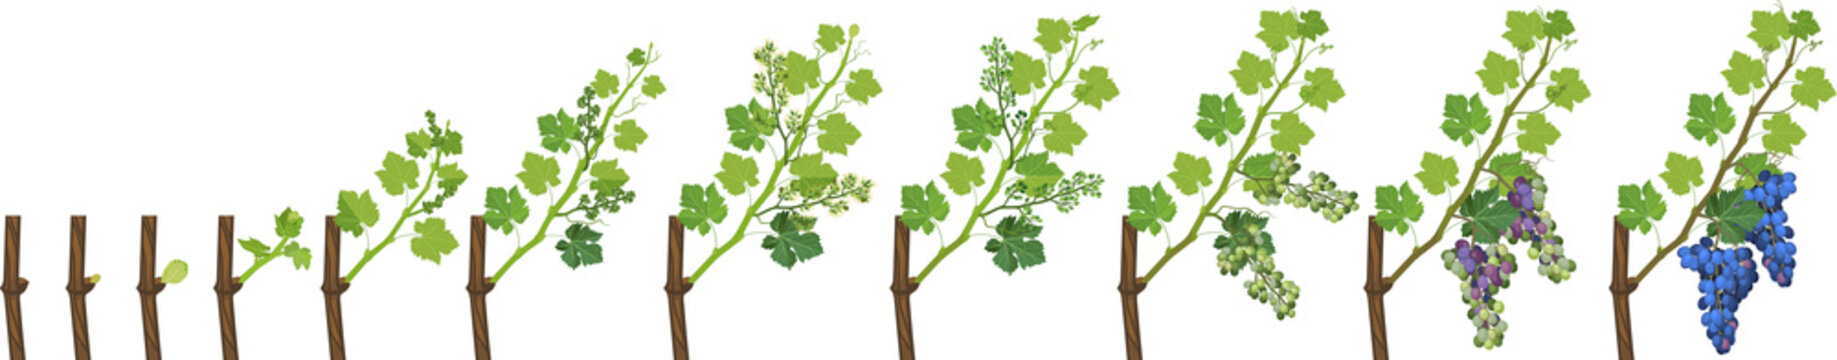 Annual growth life cycle of grapevines isolated on white background. Grapevine development stages